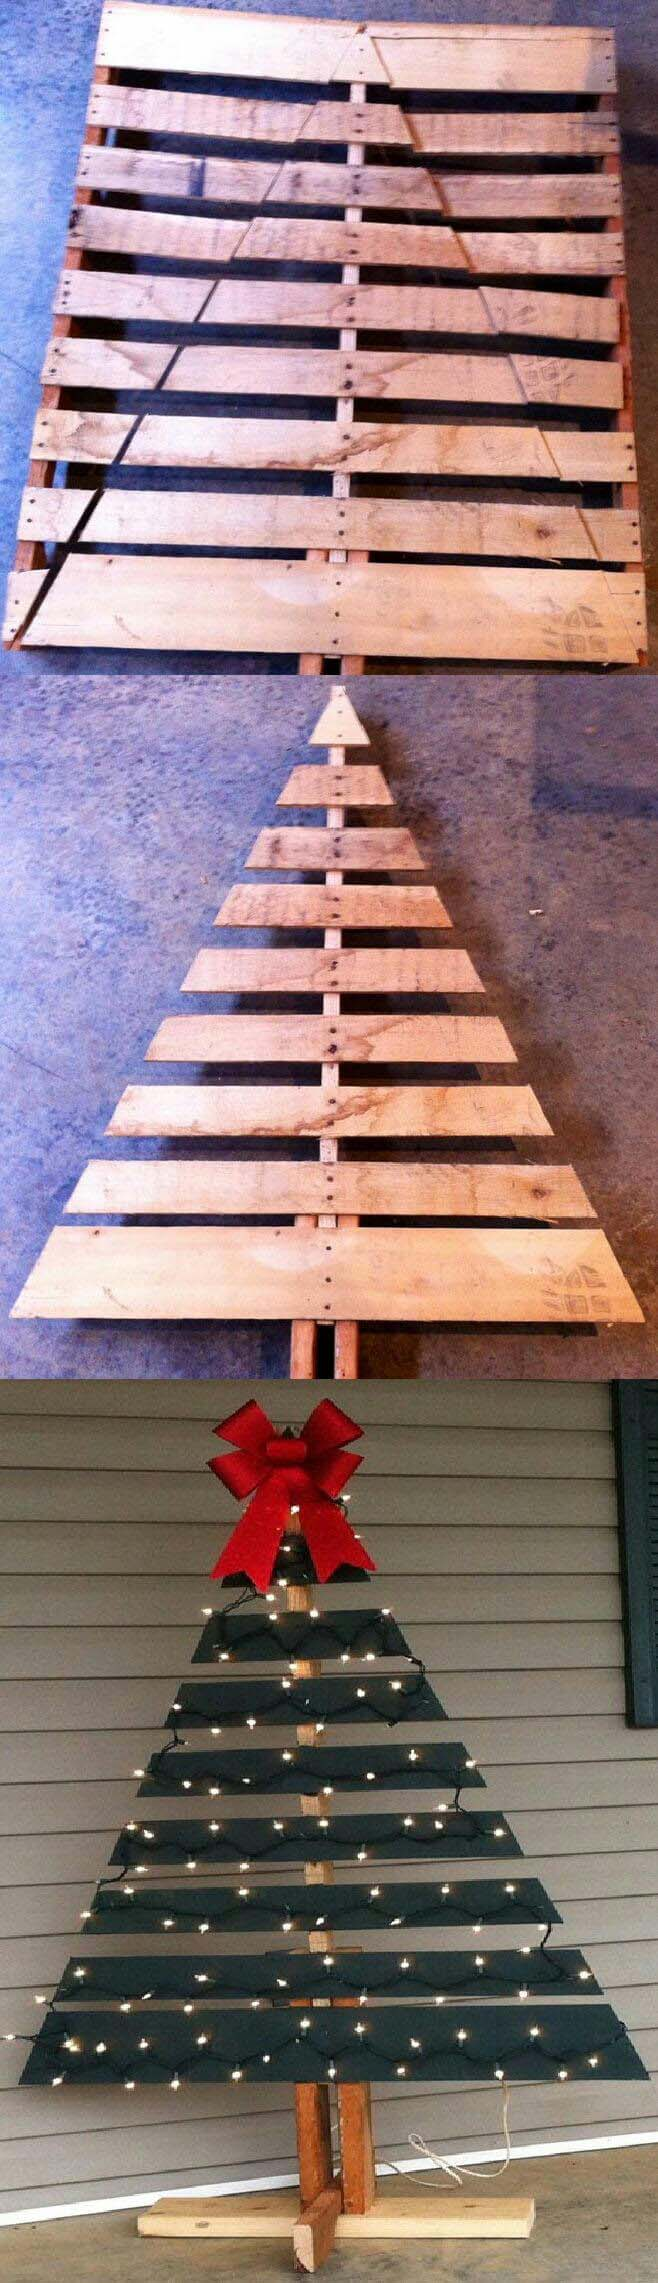 Another Spin on the Pallet Christmas Tree #Christmas #crafts #decorations #decorhomeideas